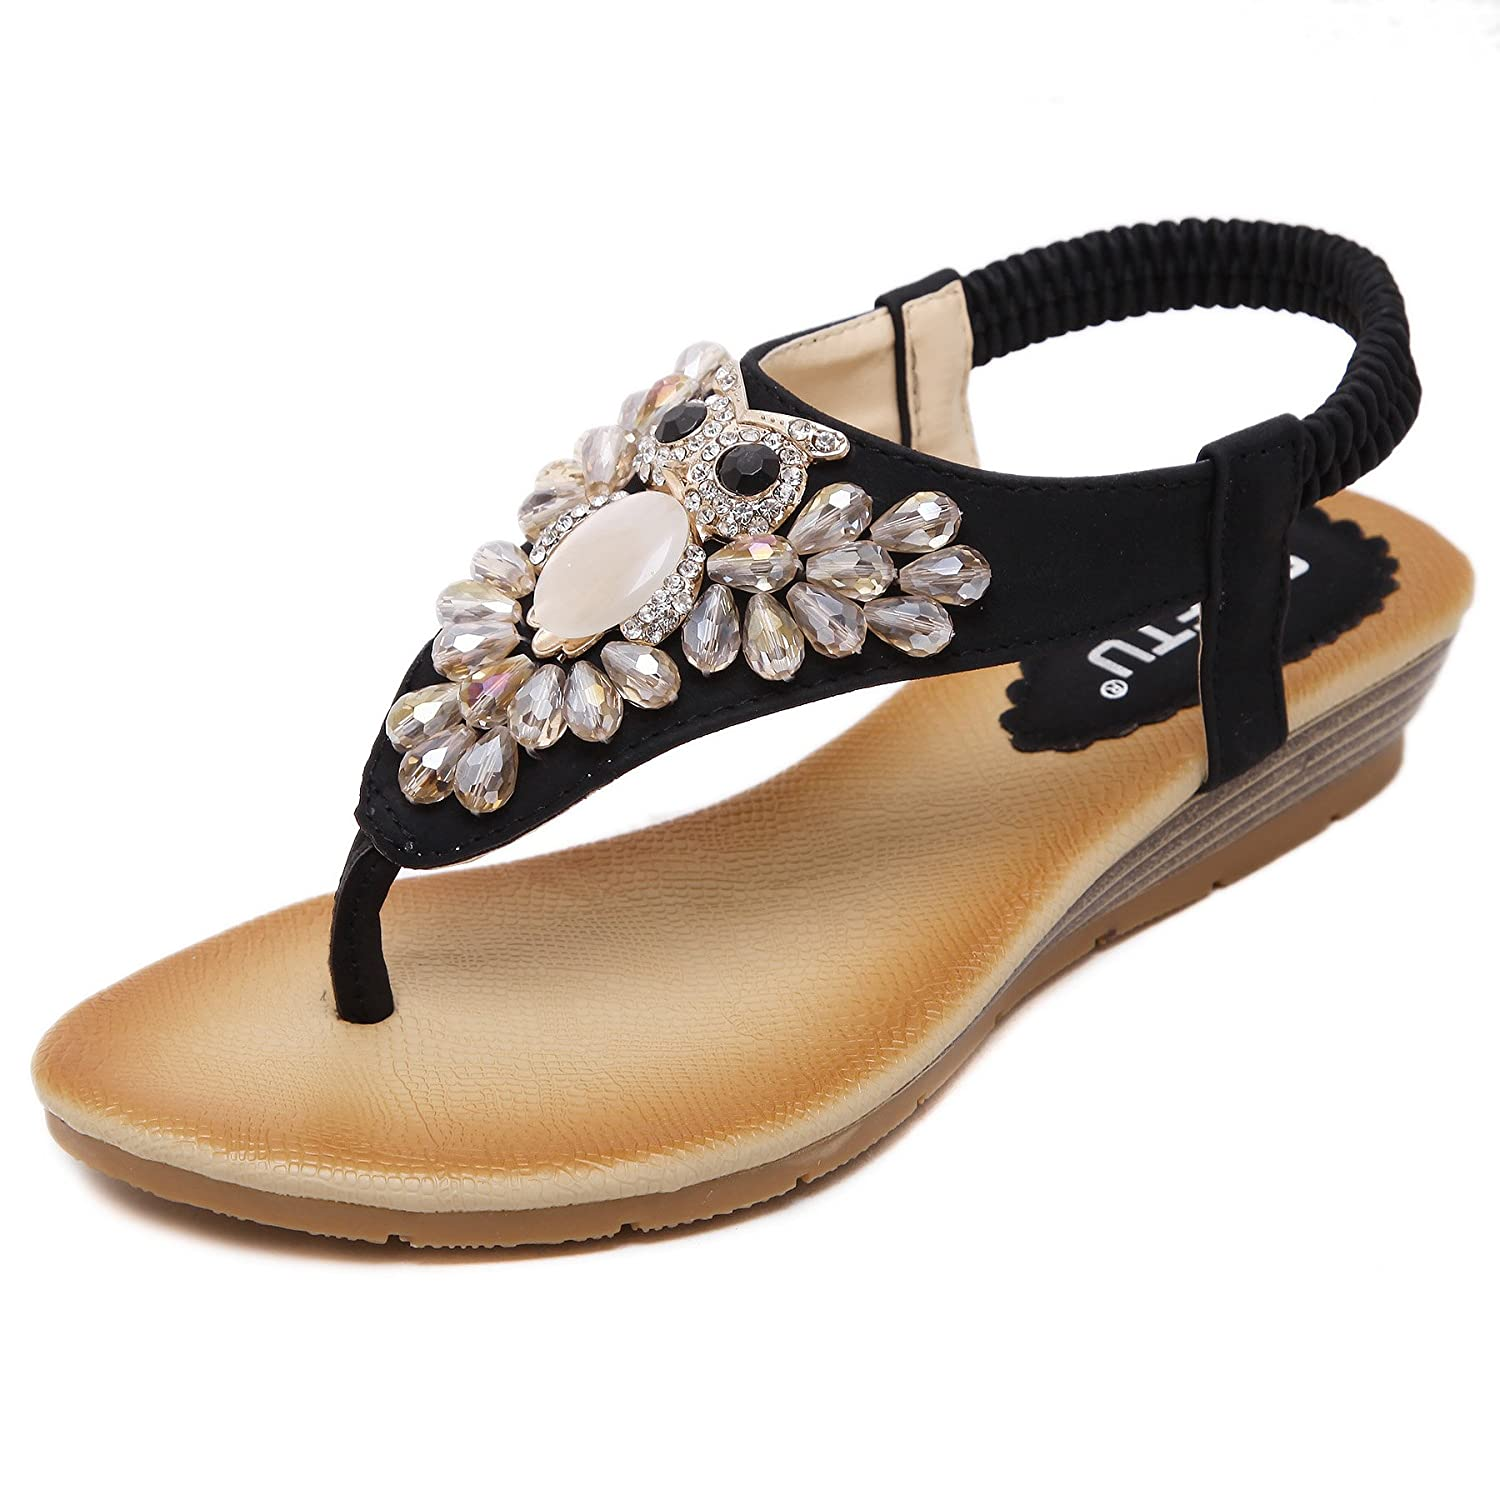 254a5b0f467f65 Women s Boho Peep Clip Toe Wedge Heel Elastic T-Strap Rhinestone Bohemia  Roman Sandals Summer Beach Post Sandals Flip Flops Shoes Thongs   Free  Earrings